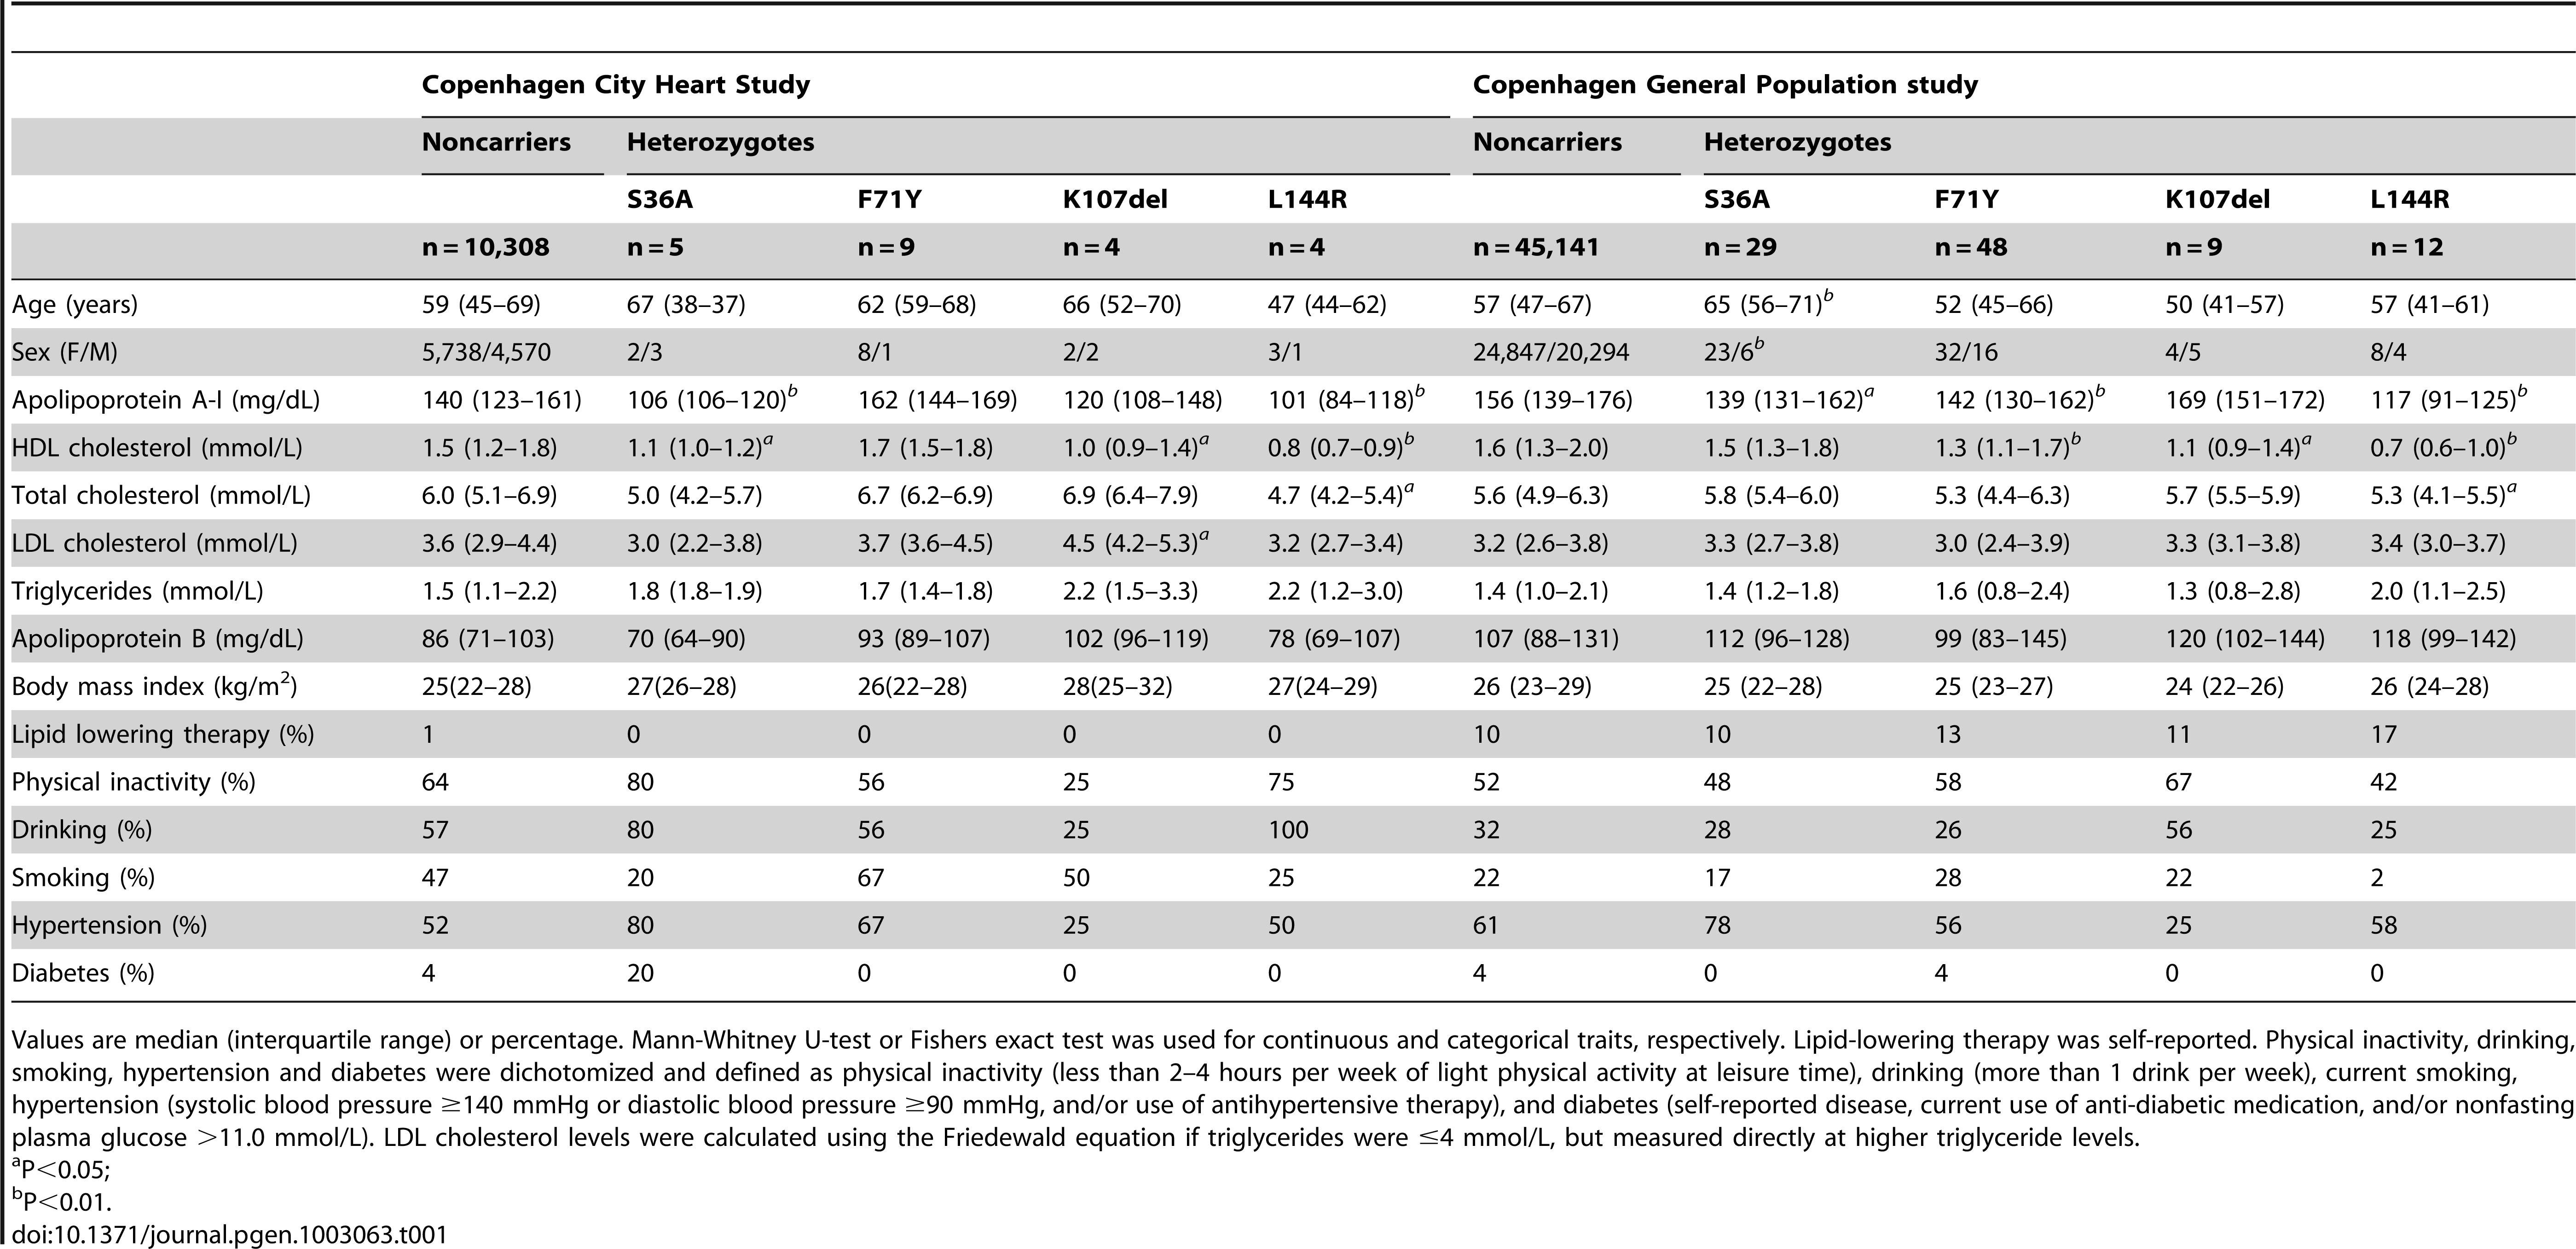 Characteristics of <i>APOA1</i> S36A, F71Y, K107del, and L144R heterozygotes and noncarriers in the Copenhagen City Heart Study (n = 10,330) and the Copenhagen General Population study (n = 45,239).